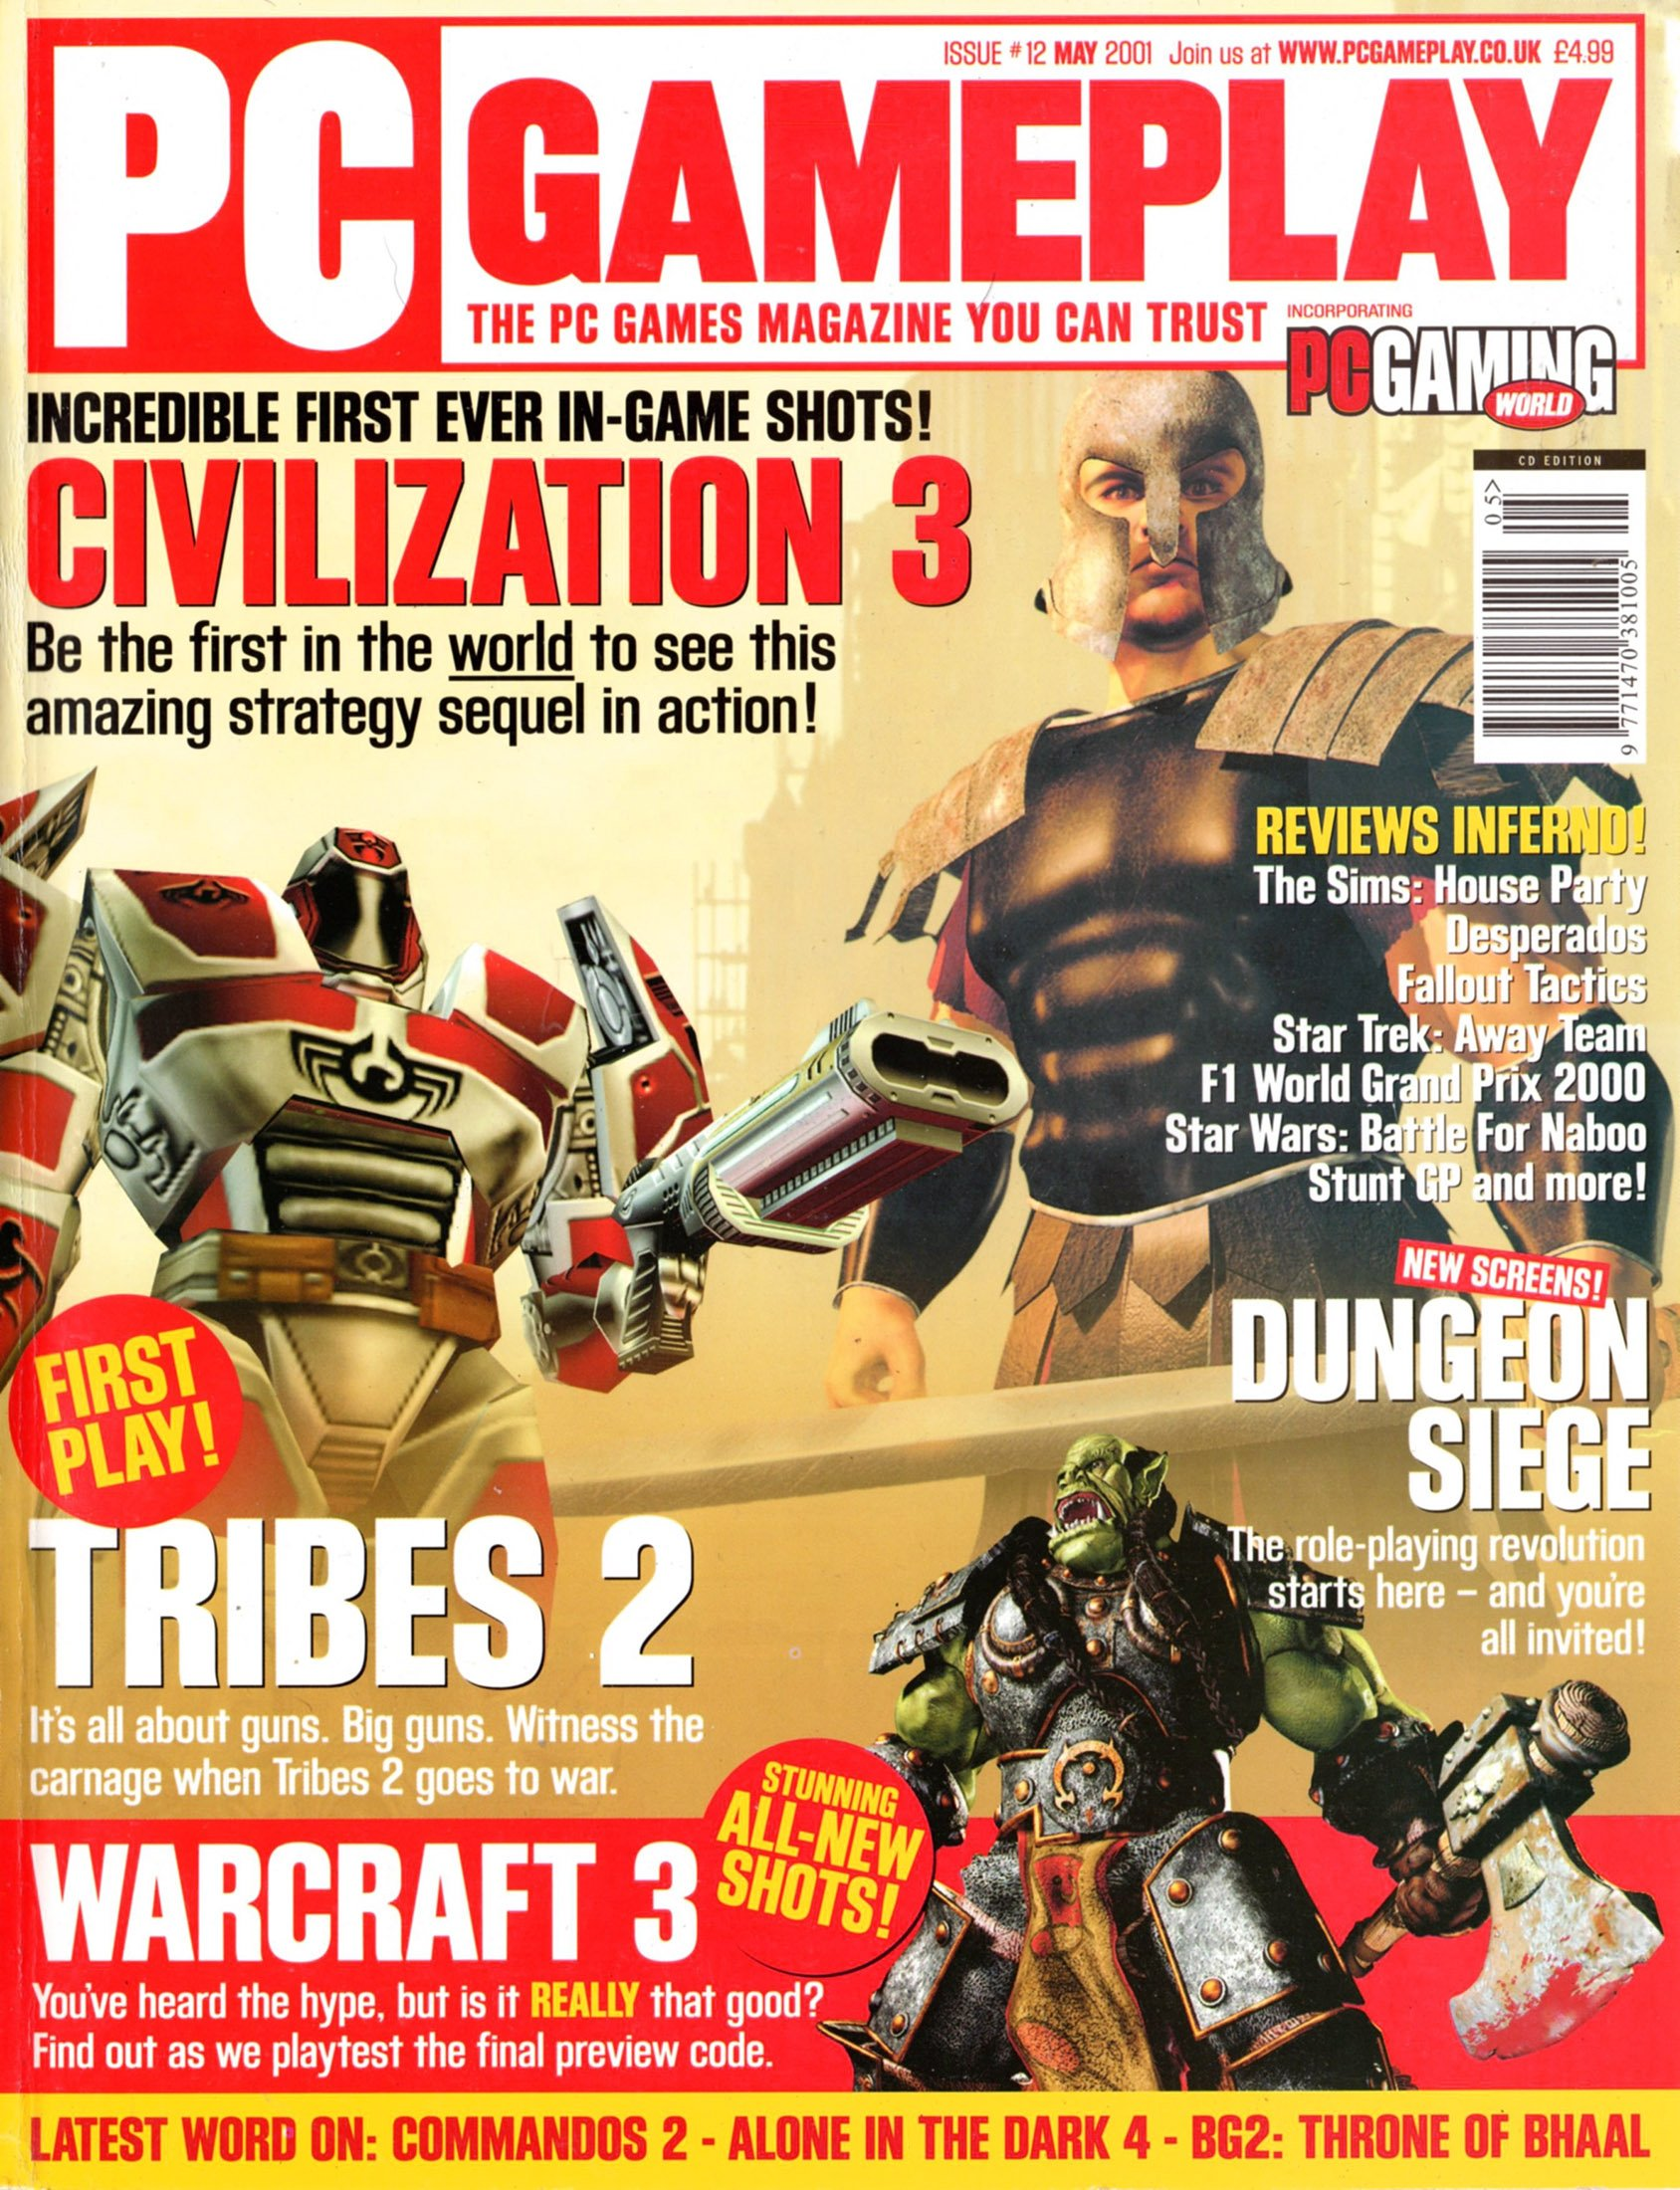 PC Gameplay Issue 12 (May 2001)